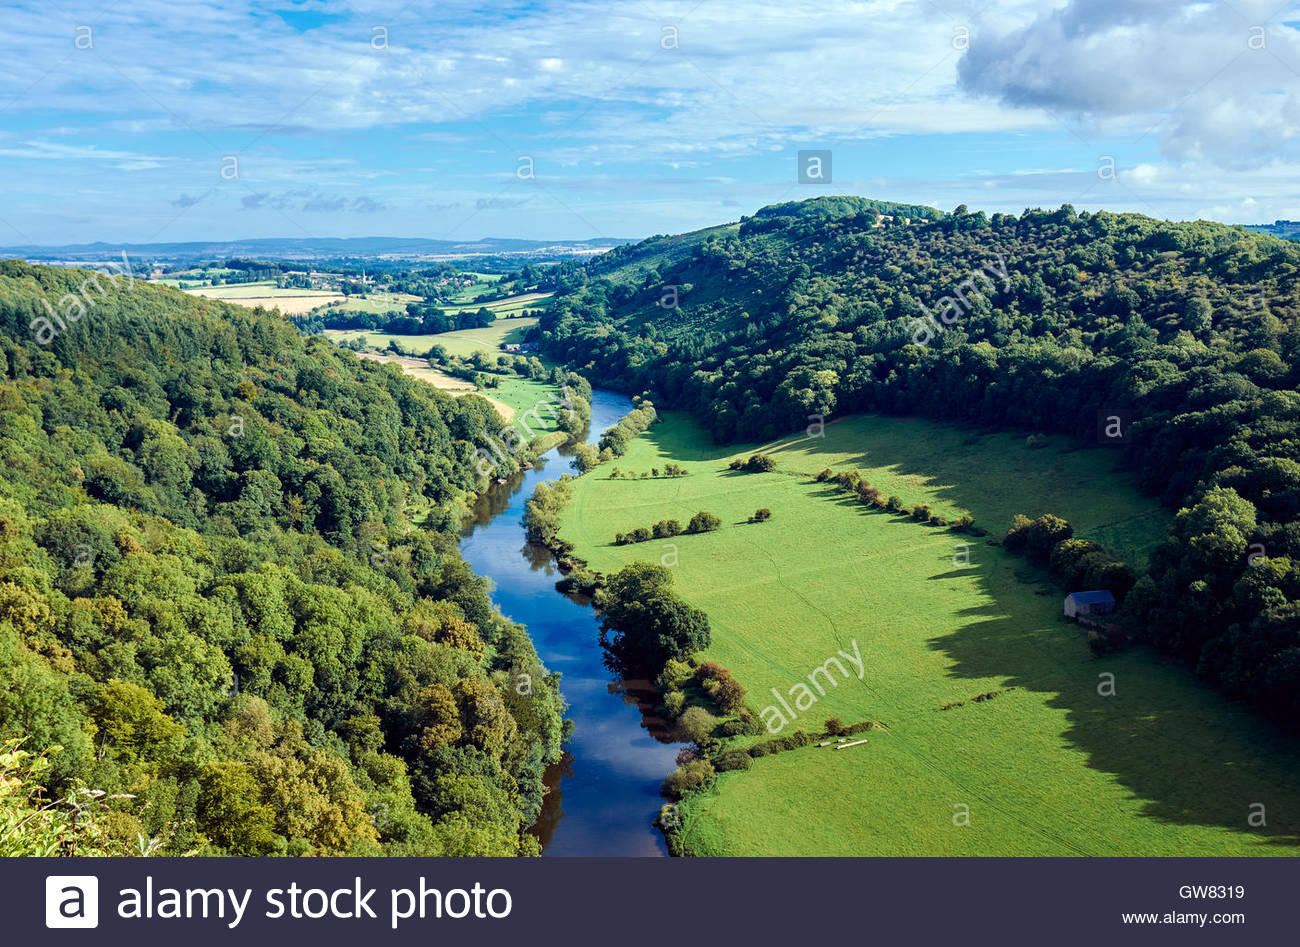 The river wye in Wye valley, the view from above at Symonds Yat rock viewpoint - Stock Image